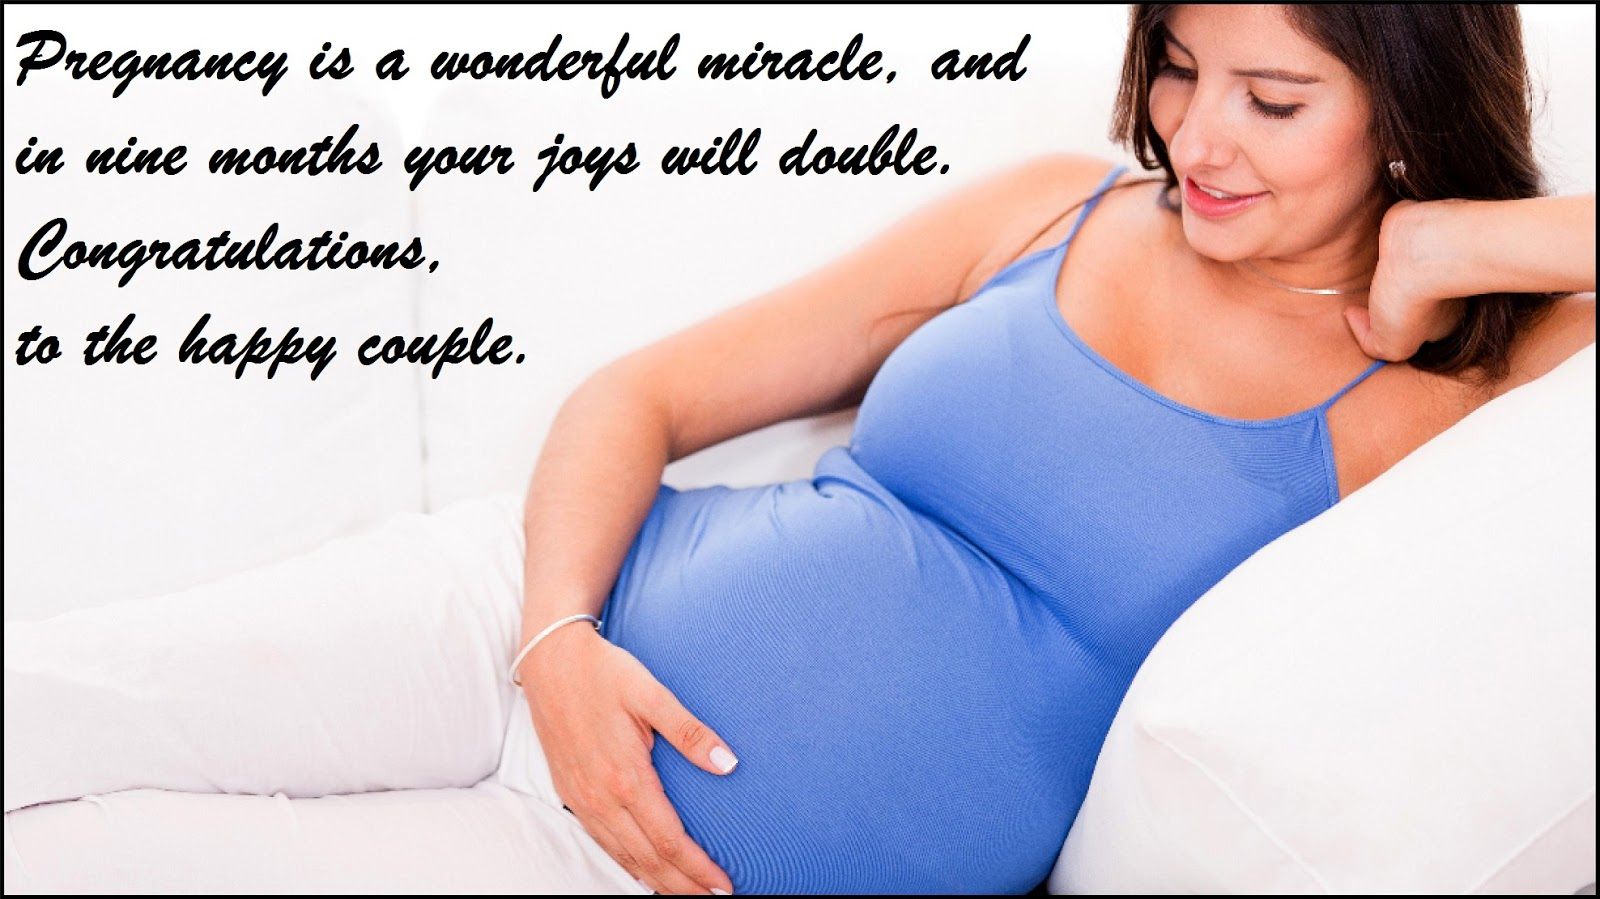 10 pregnant joys in anticipation of happiness